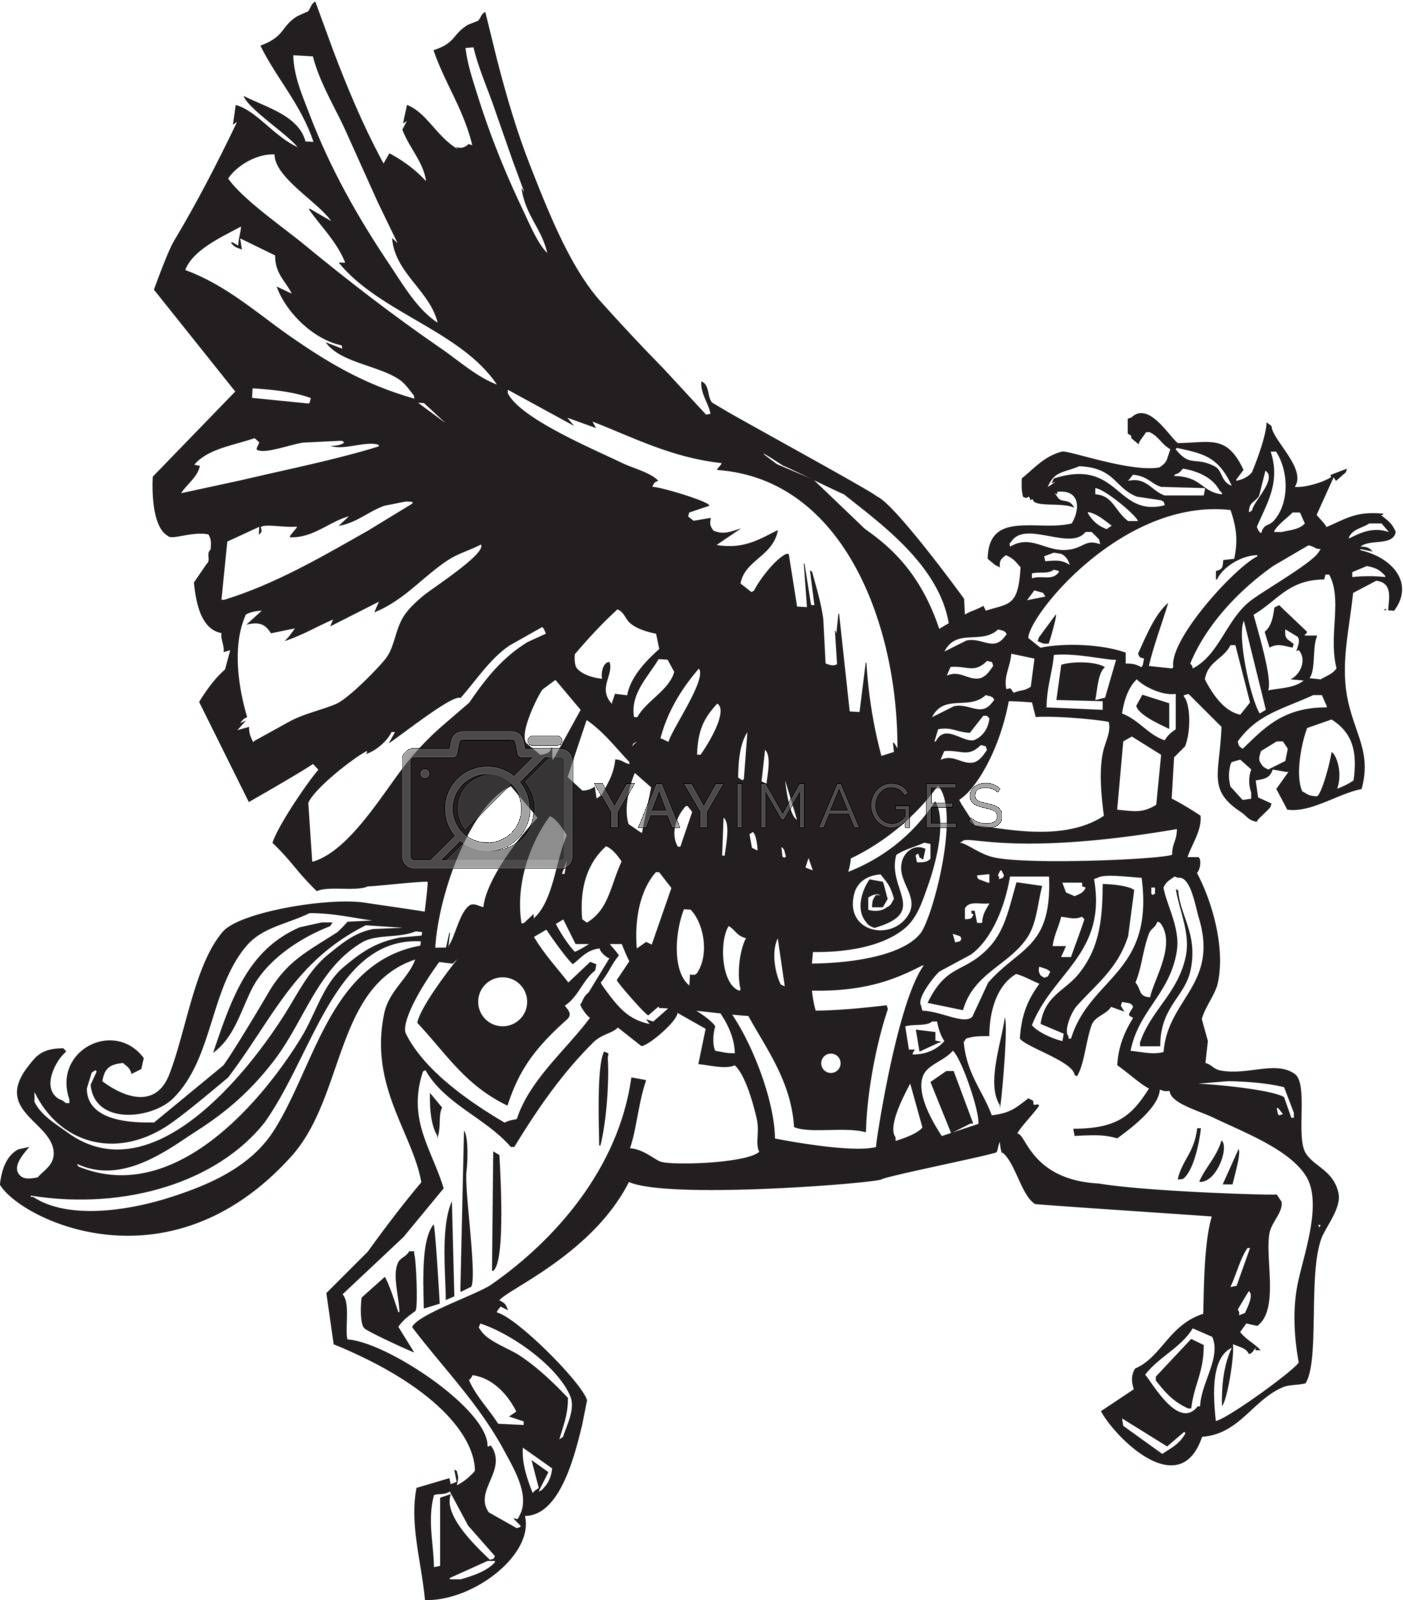 Woodcut style image of a mythical Pegasus in full bridal gear.